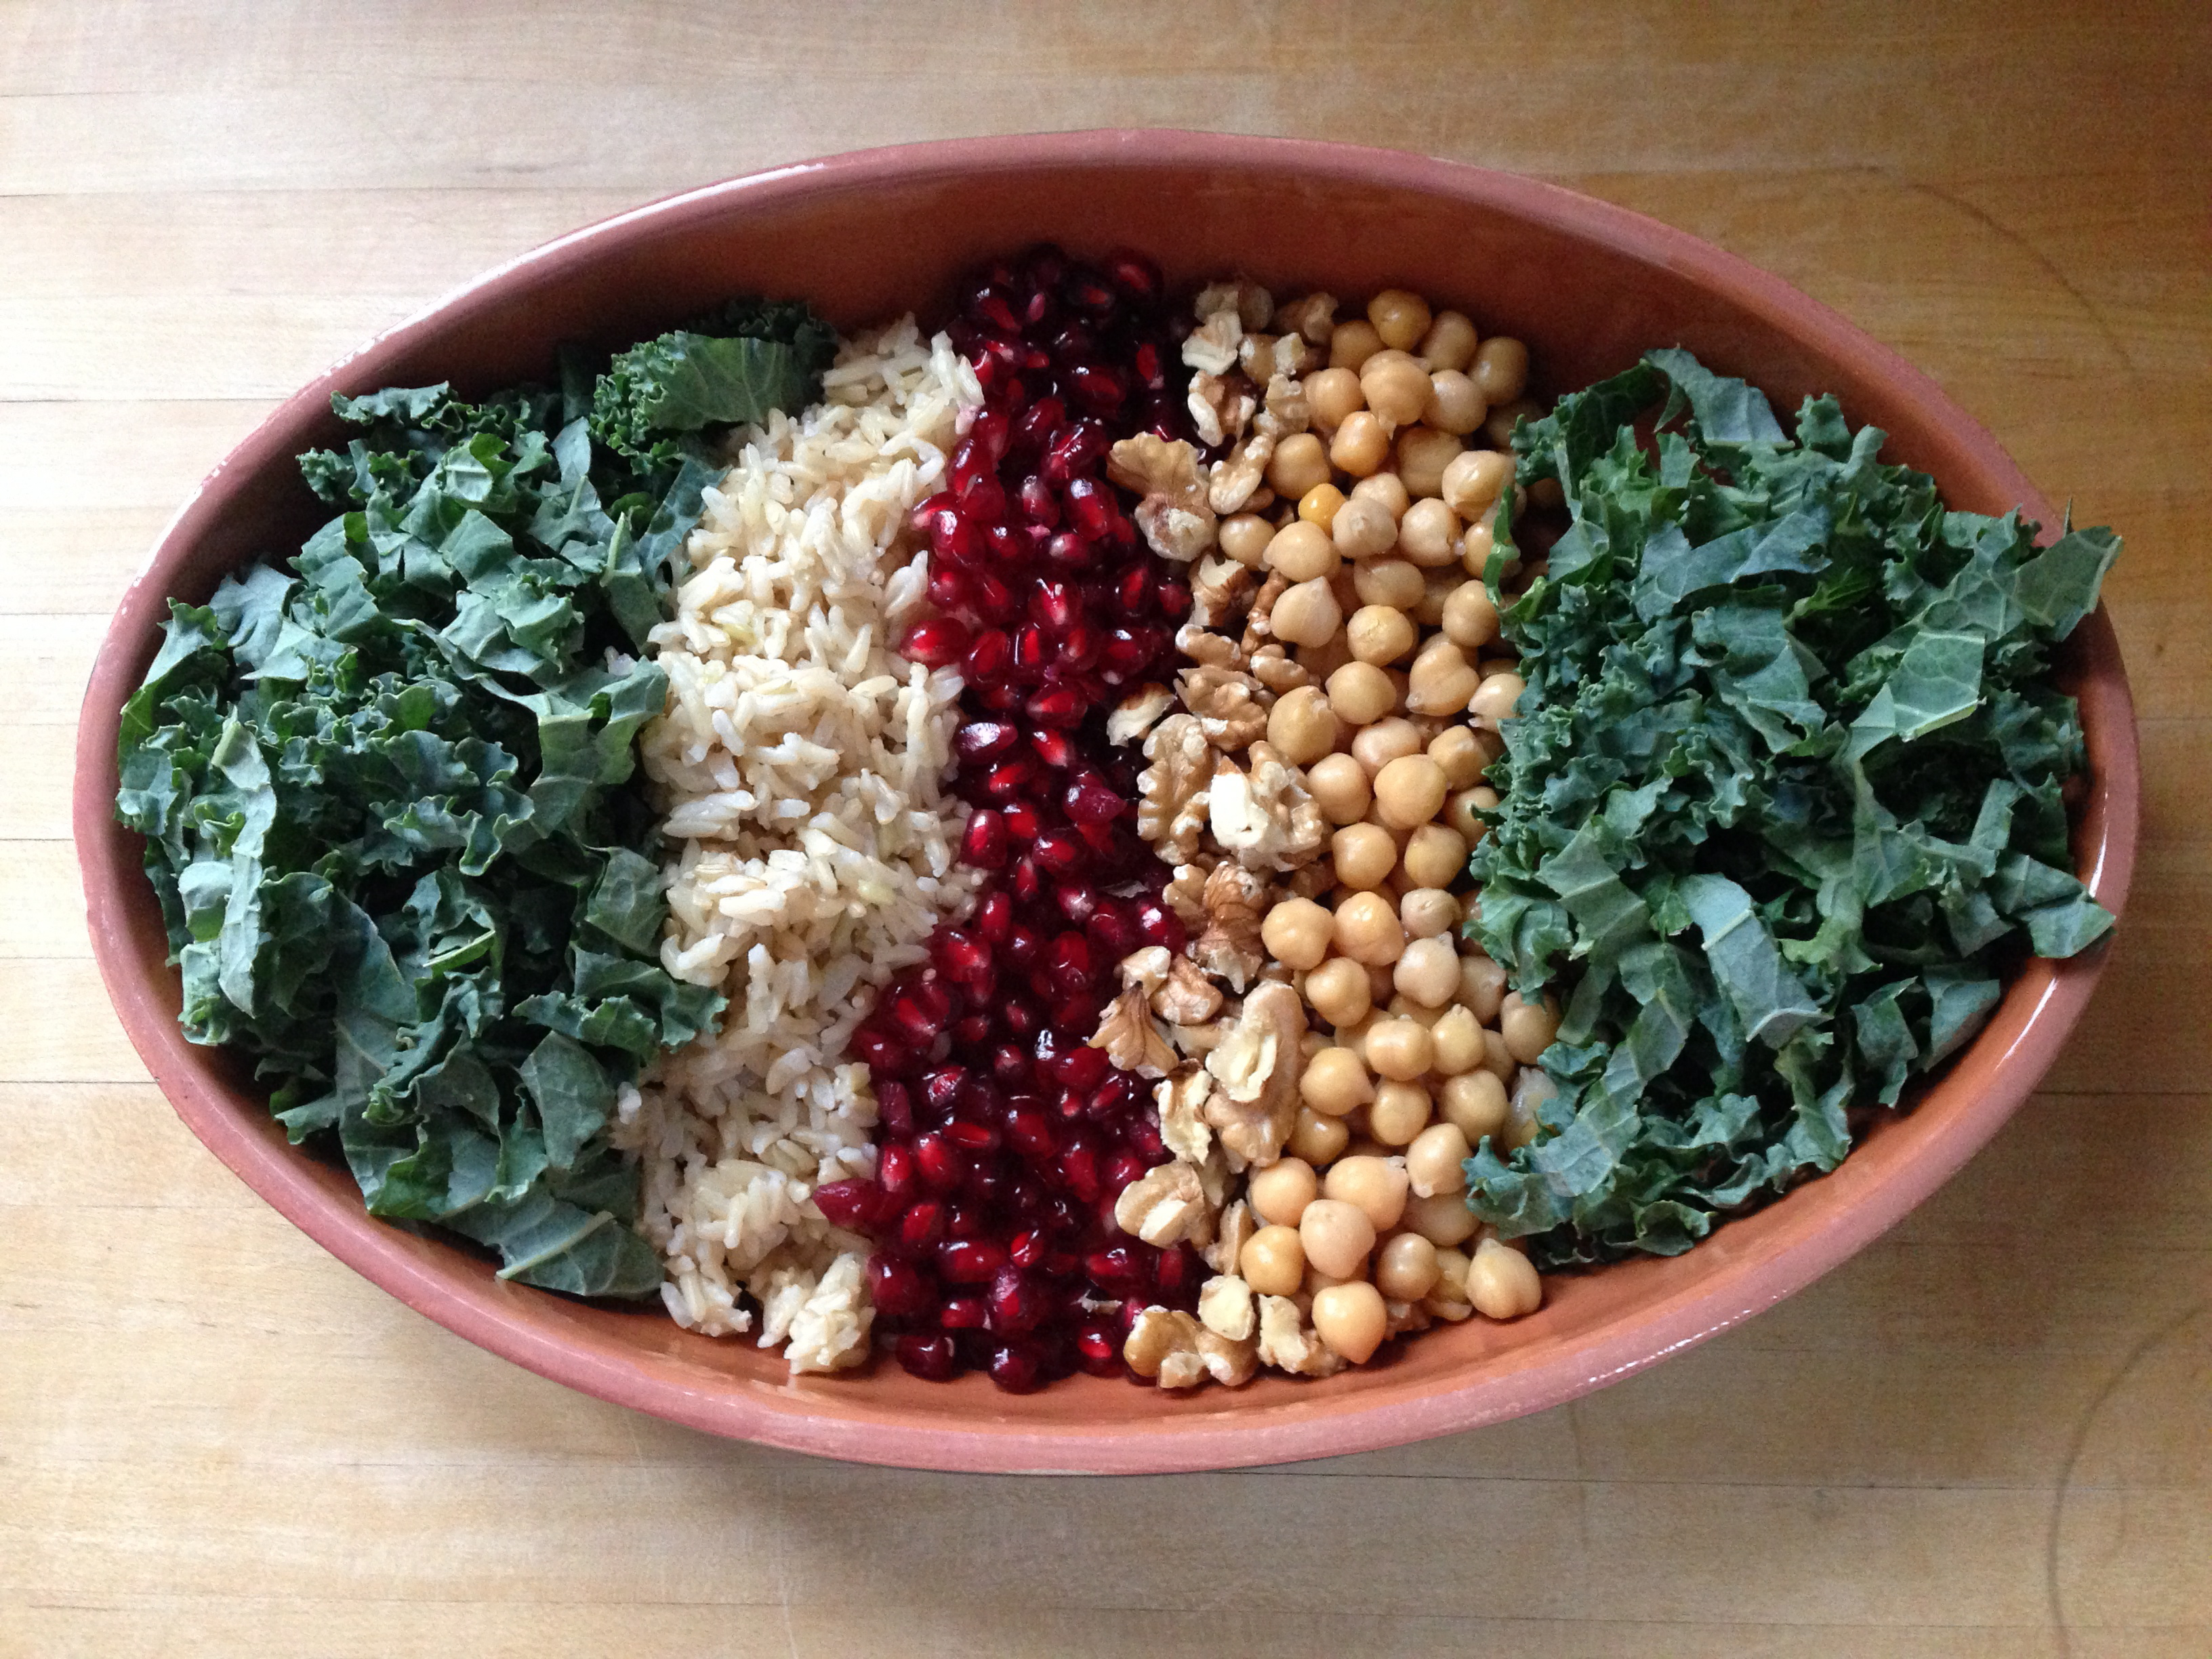 Kale, brown rice, pomegranates, raw walnuts, chickpeas and more kale.